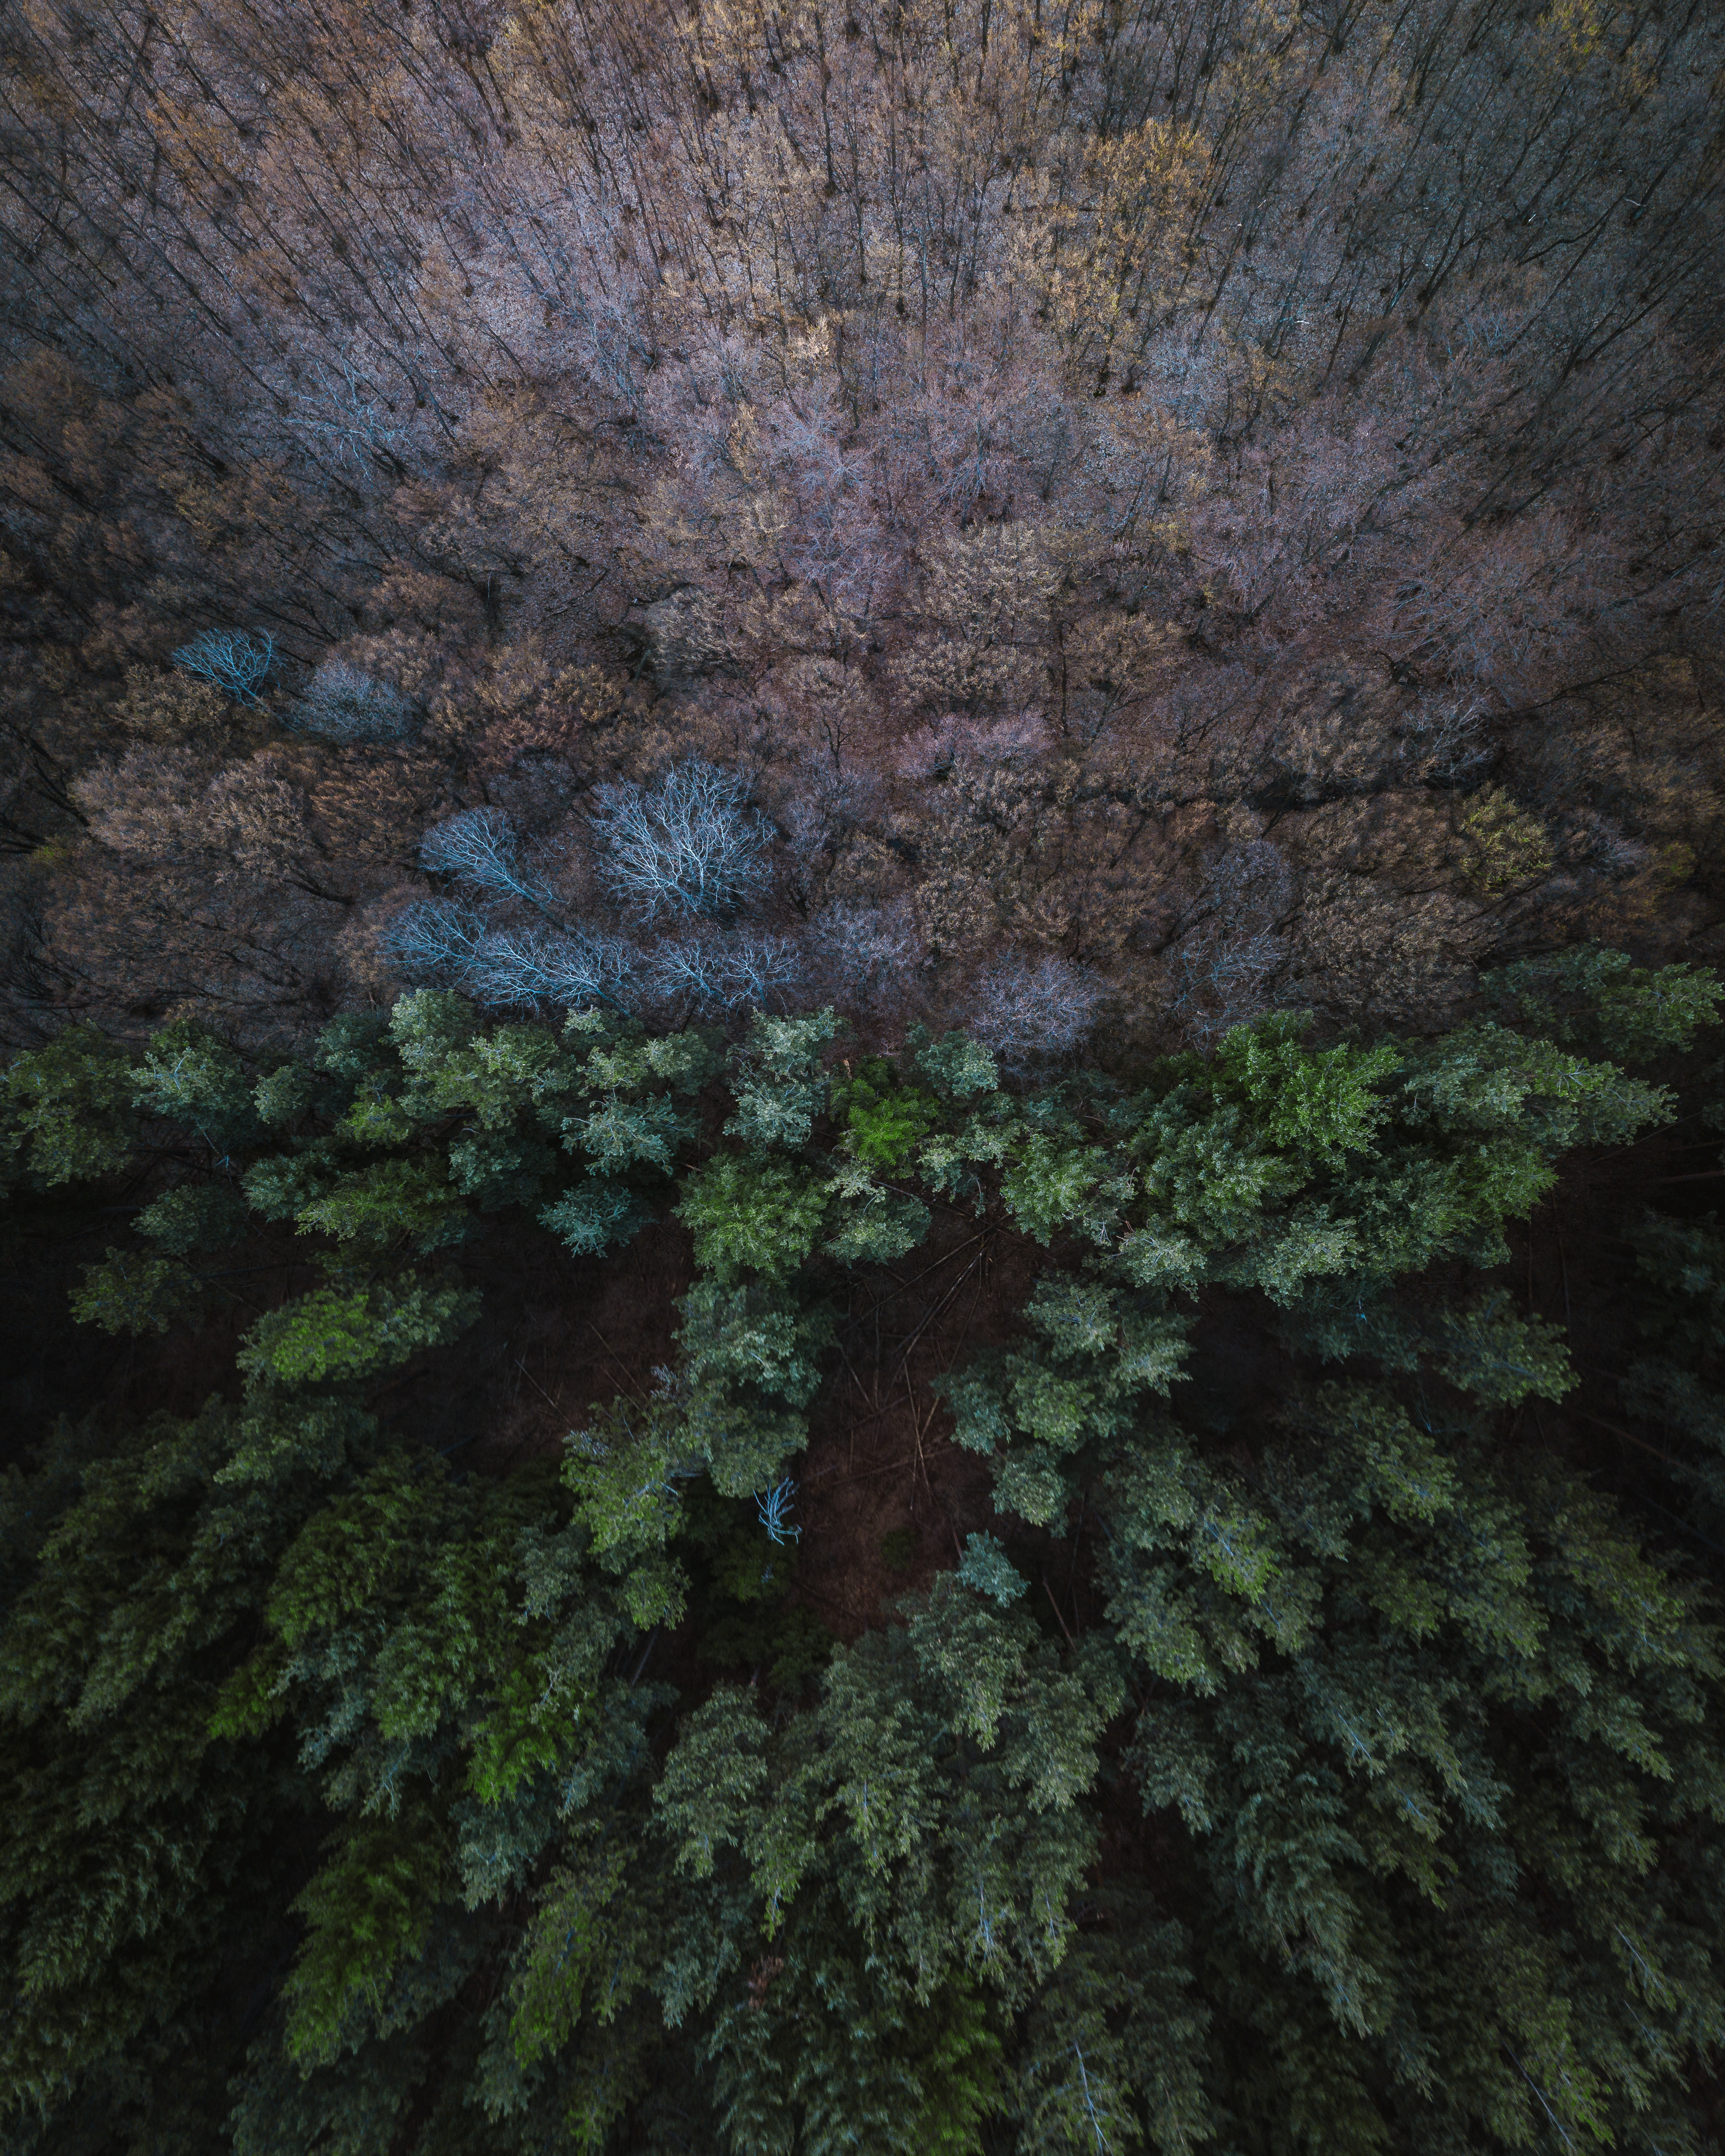 127980 download wallpaper Nature, View From Above, Balance, Forest screensavers and pictures for free